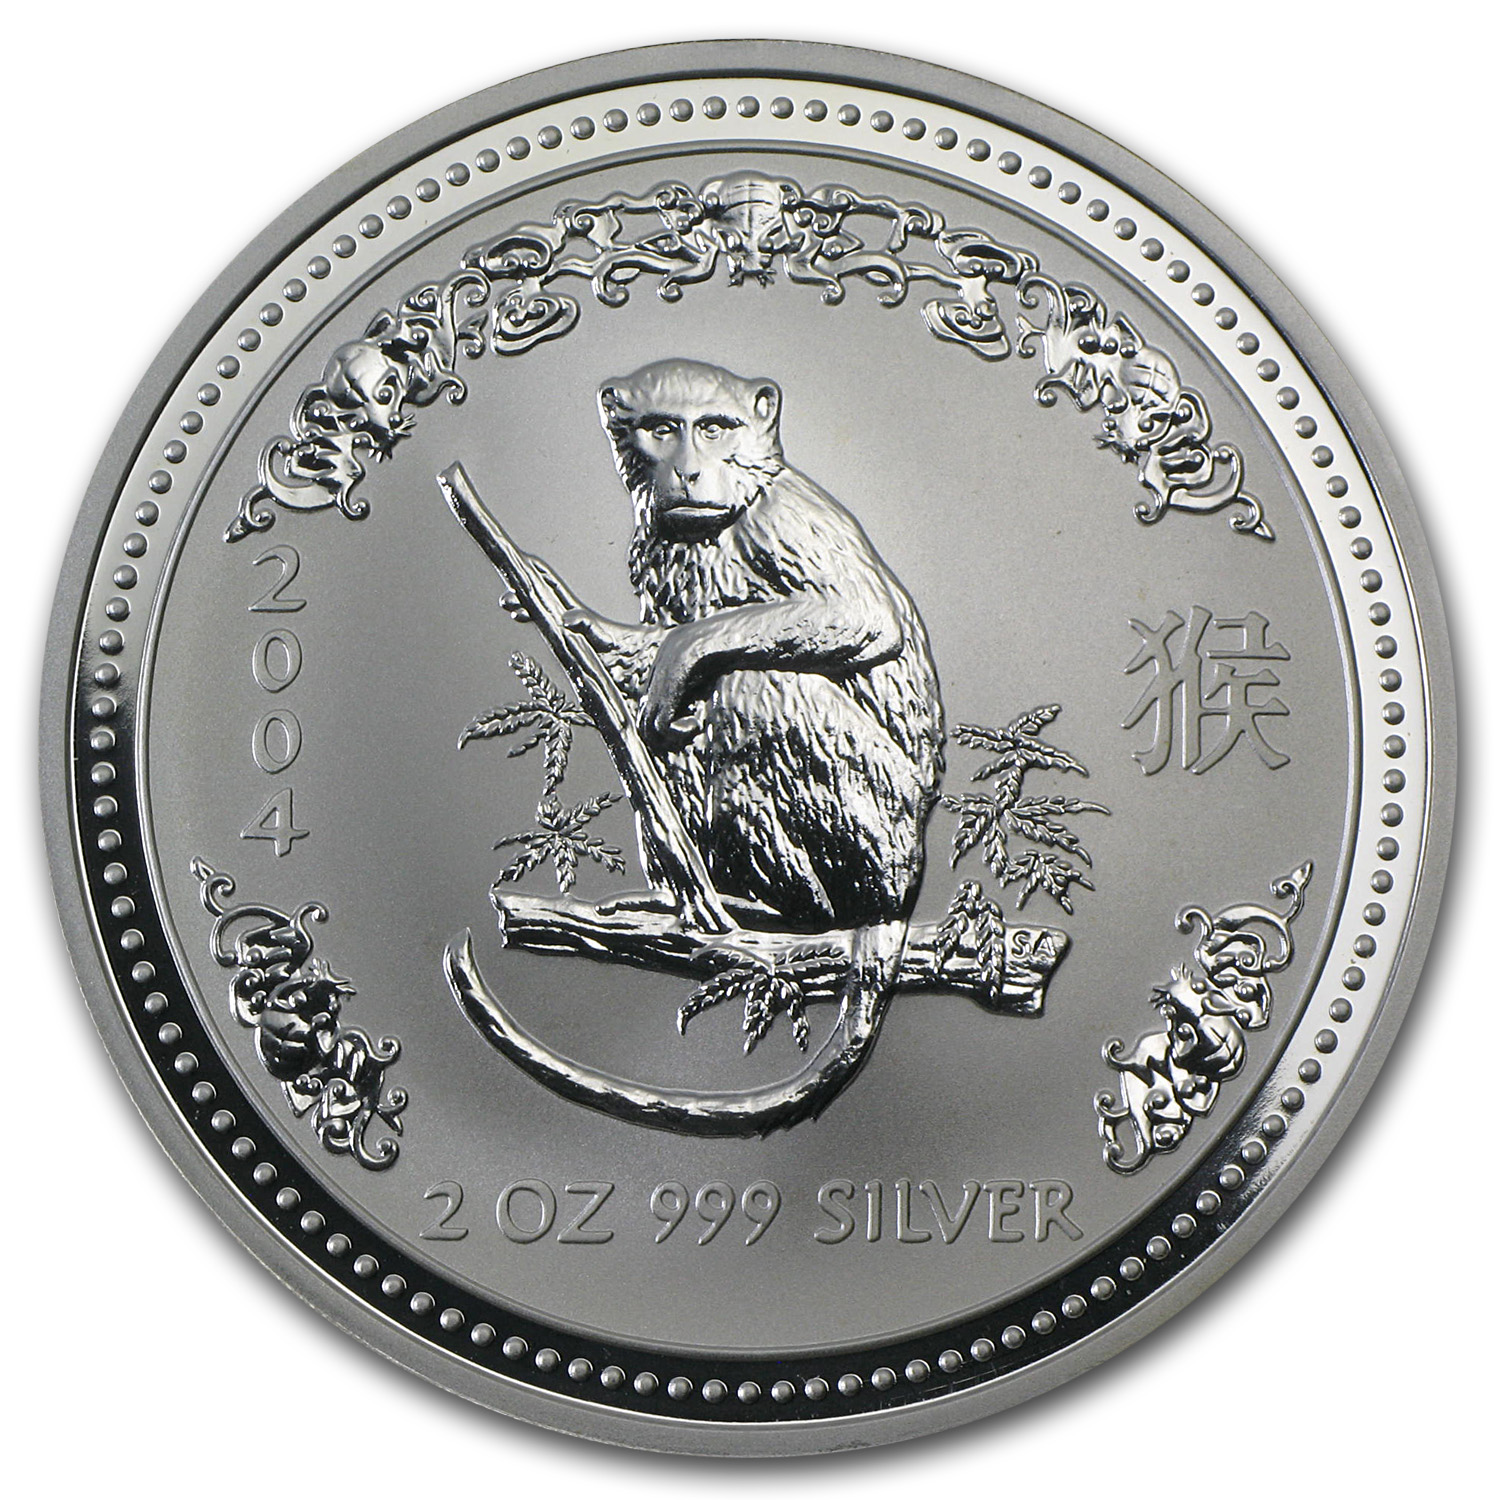 2004 Australia 2 oz Silver Year of the Monkey BU